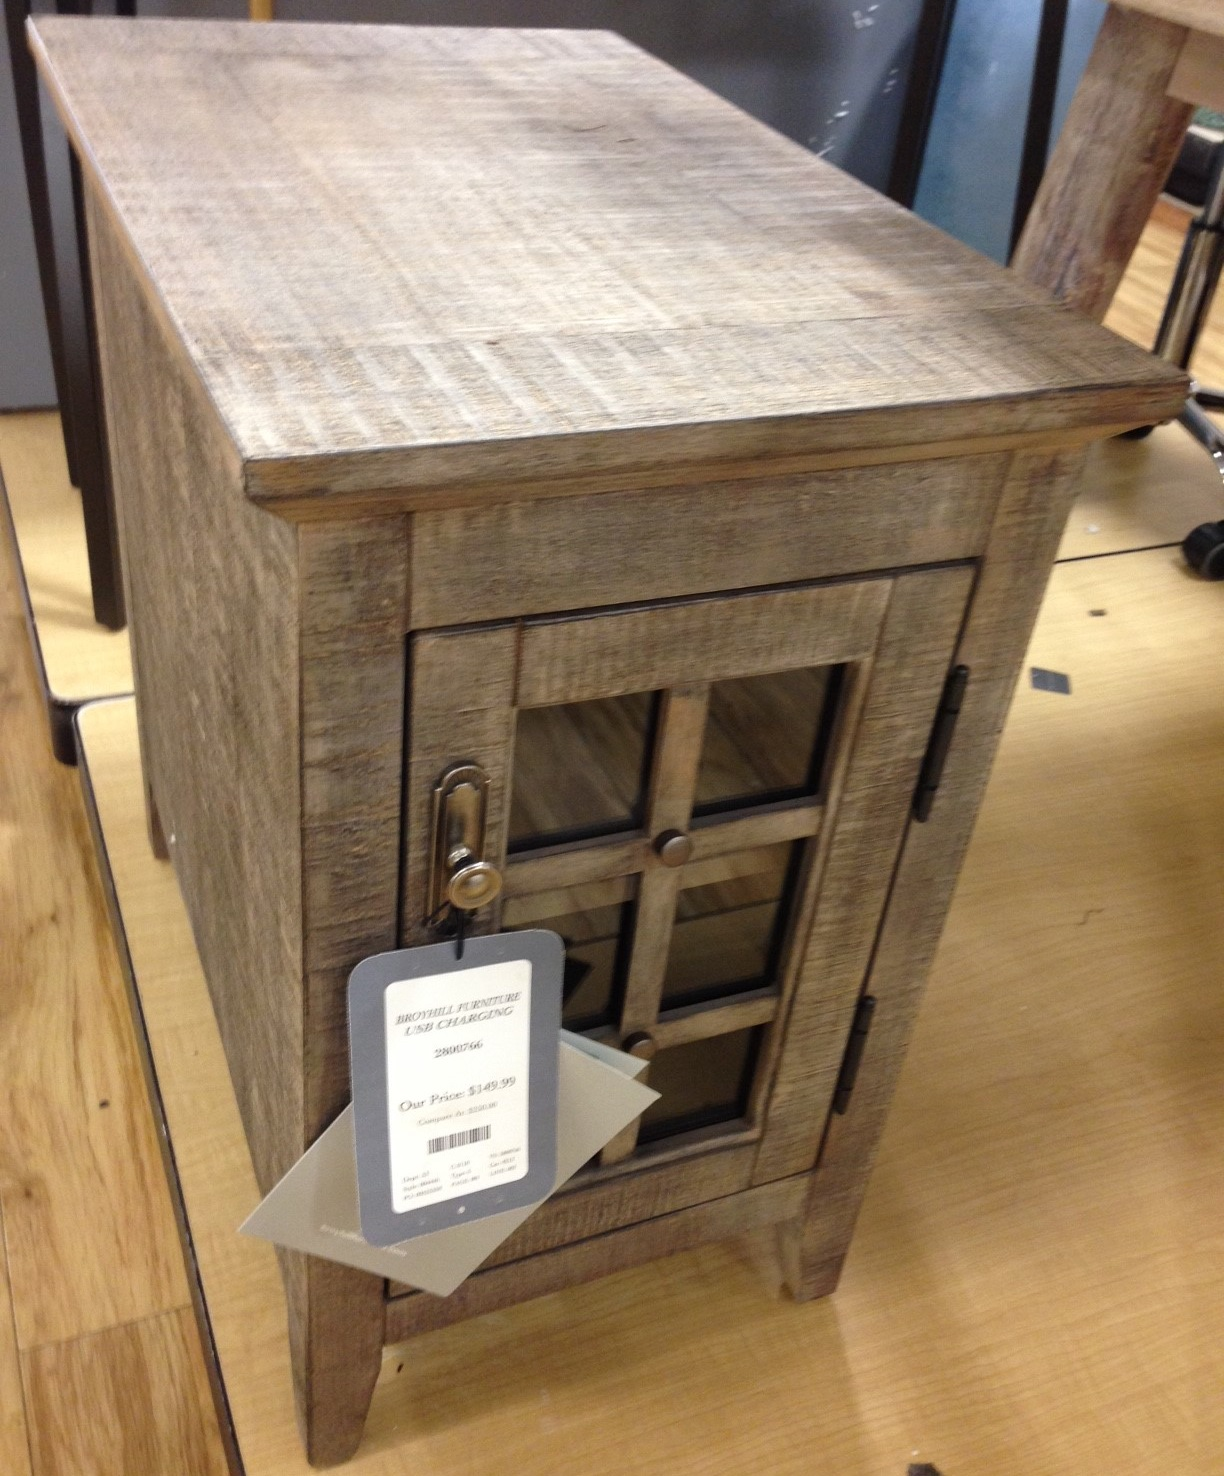 broyhill chairside table weekender weathered gray maxx end with usb color found target corner cool accent tables covered litter small wine refrigerator mid century two tier hobby